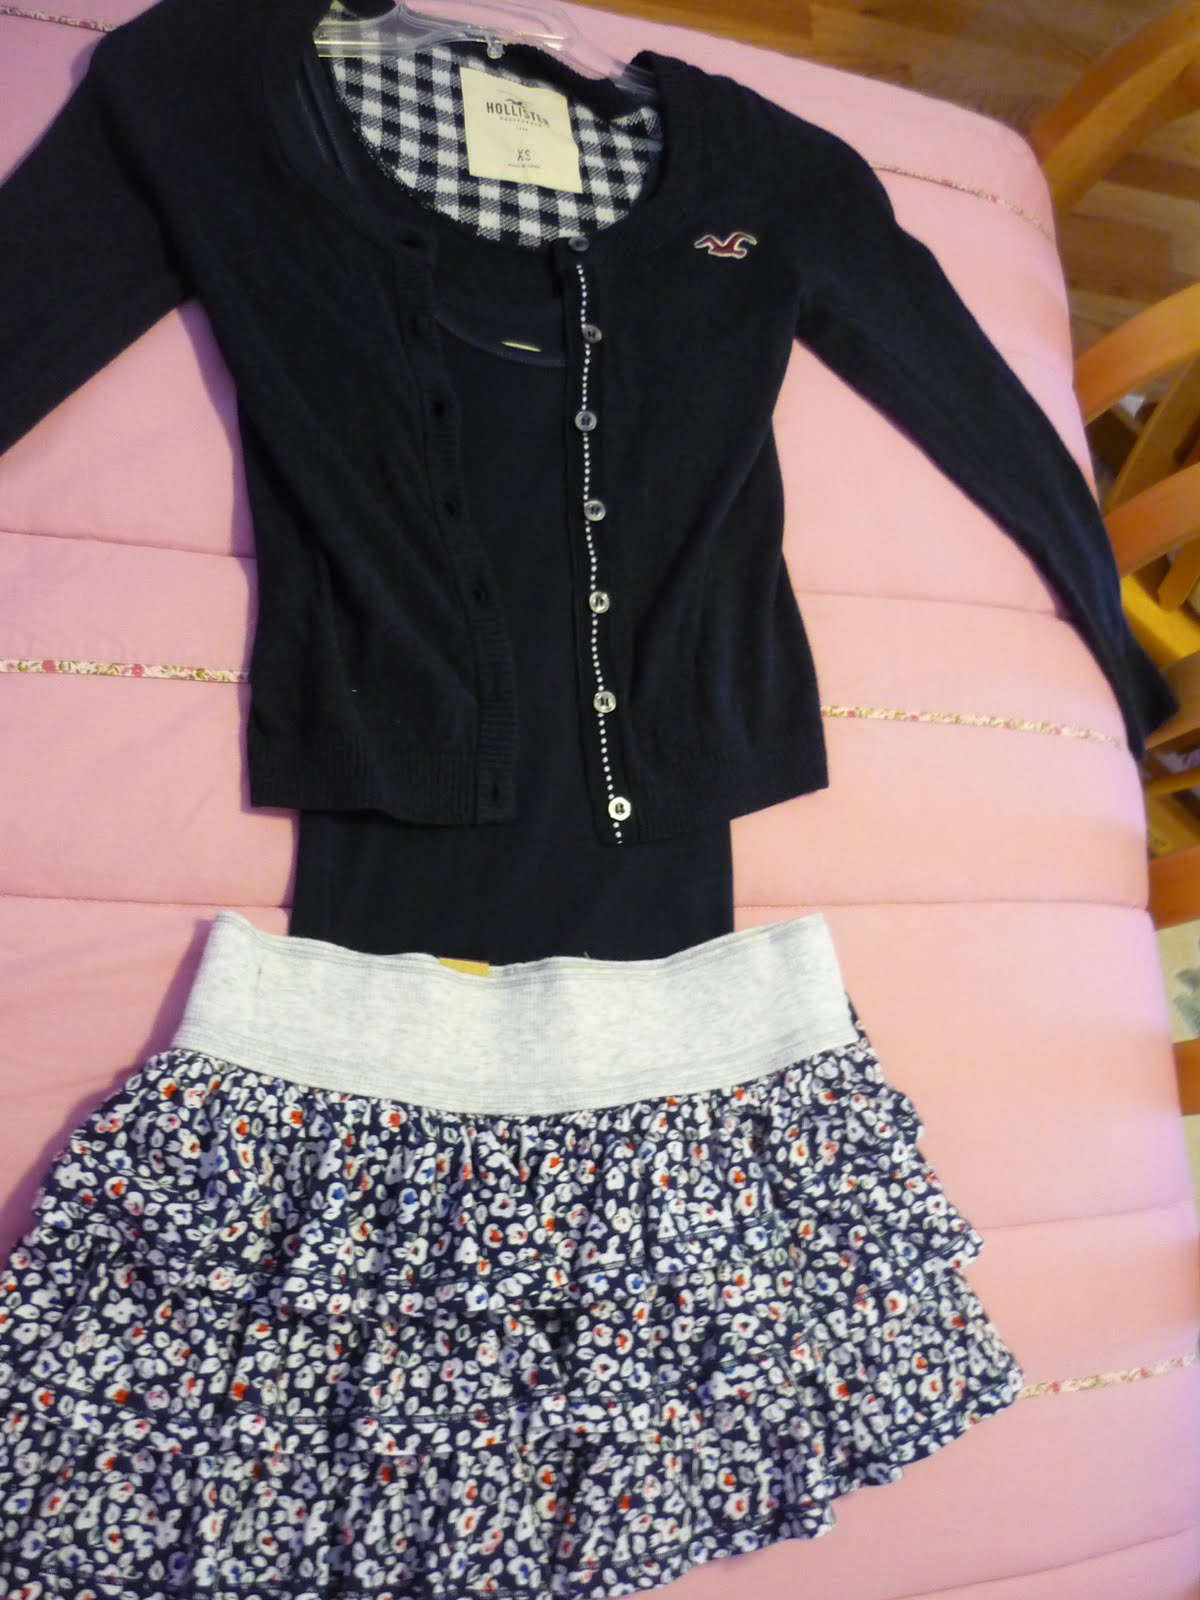 Jkglam back to school outfit ideas first day of school